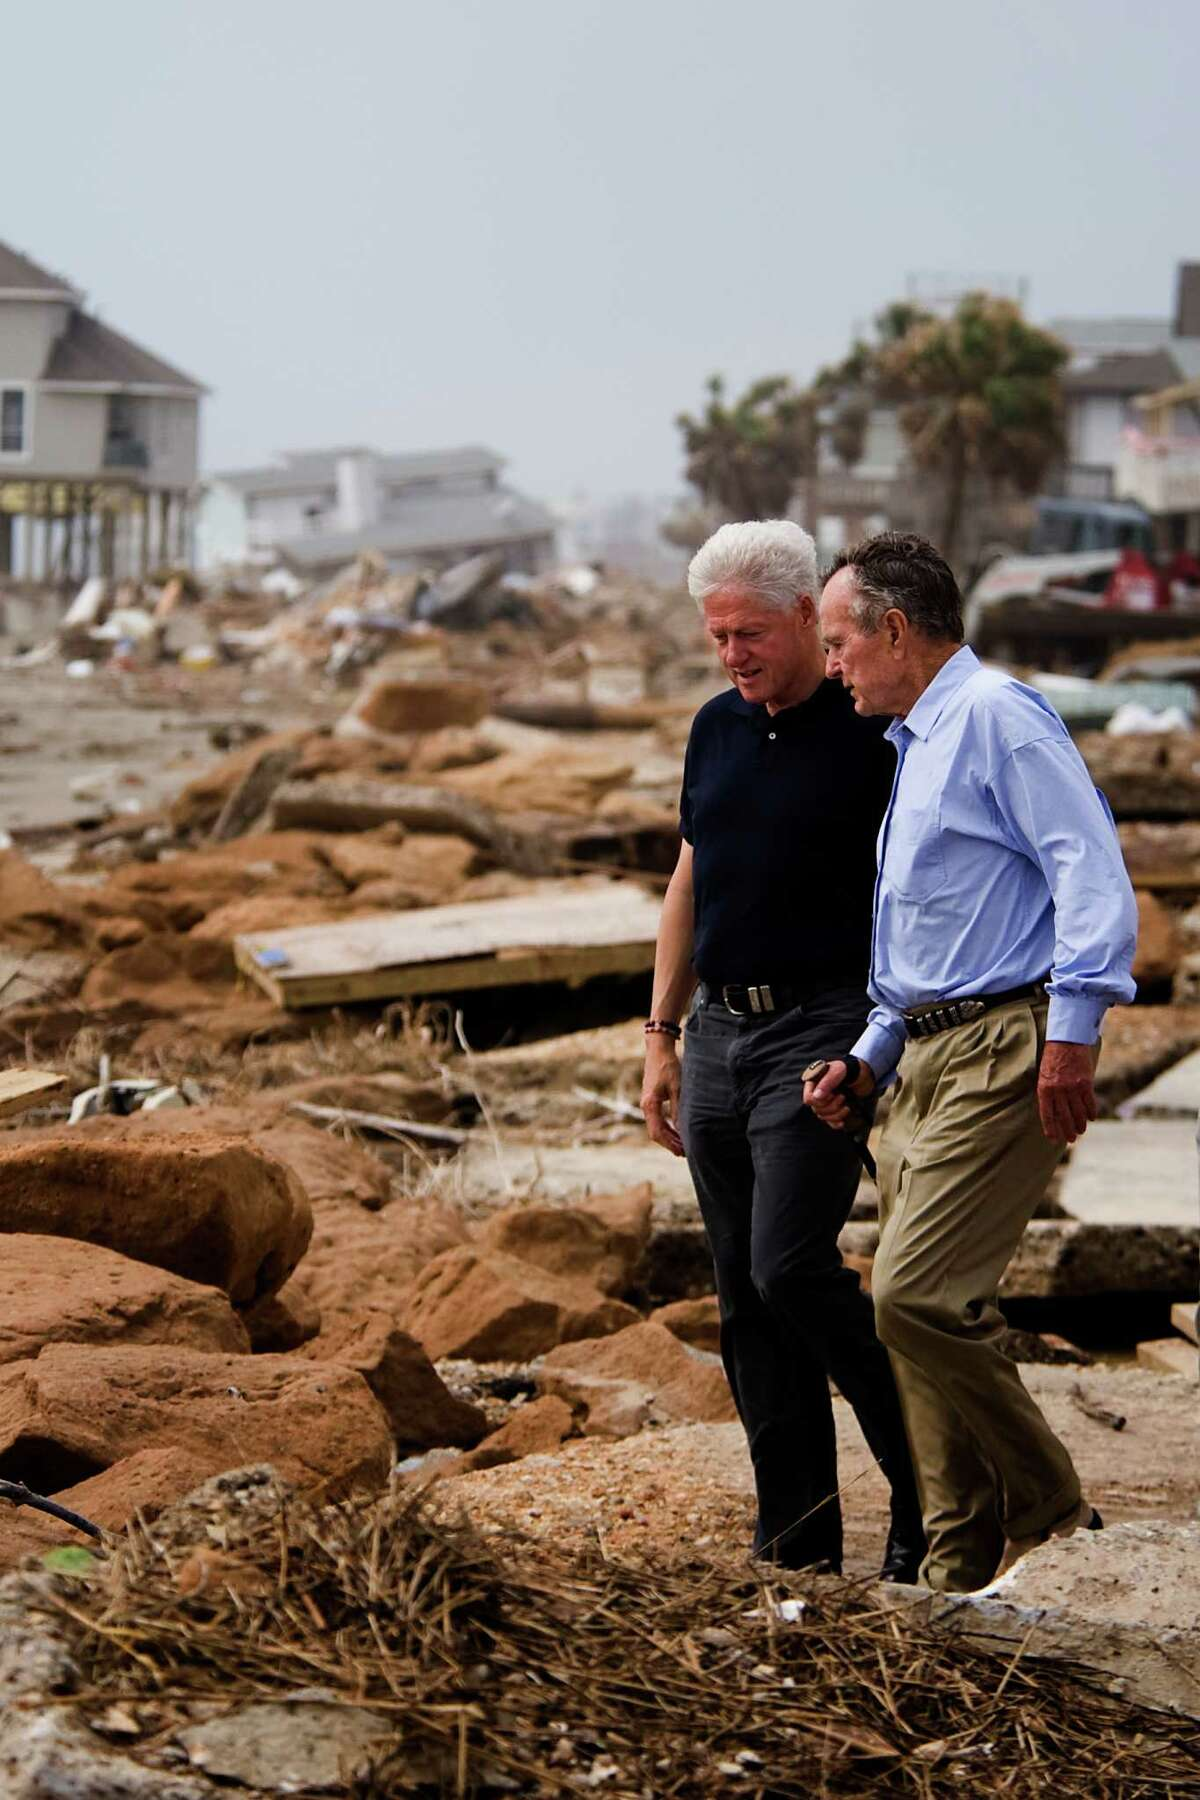 Former U.S. Presidents George H.W. Bush and Bill Clinton walk through debris at Bermuda Beach on Galveston Island as they tour areas affected by Hurricane Ike Tuesday, Oct. 14, 2008, in Galveston. The threat from tropical storms, hail, wildfires and other weather disaters is being cited for increased homeowner insurance rates in Texas. ( Smiley N. Pool / Chronicle )